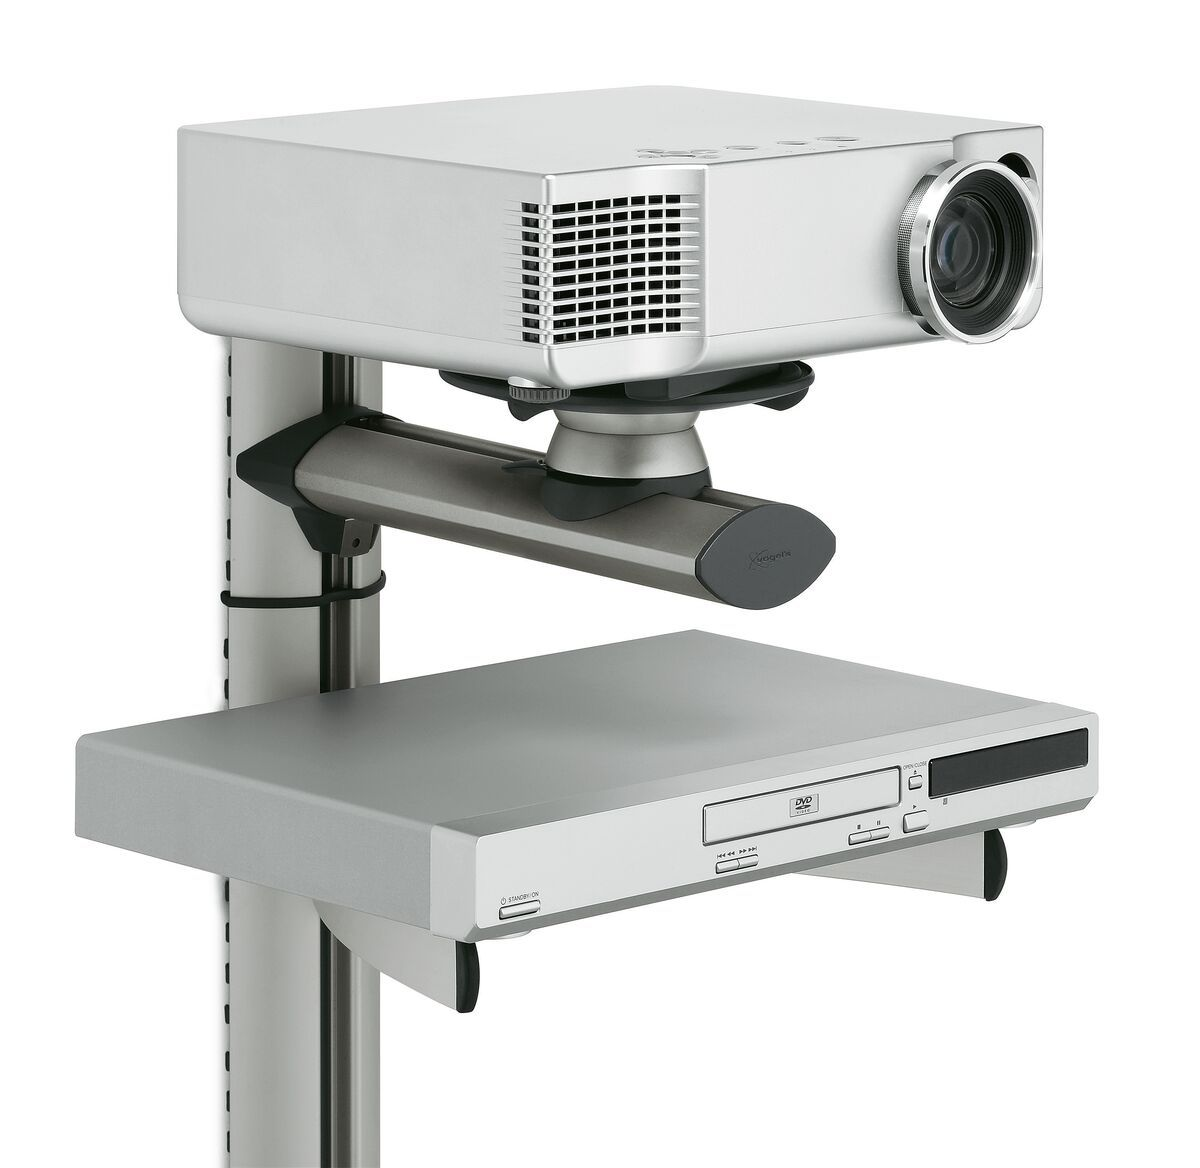 Vogel's EPW 6565 Projector Wall Mount - Max. weight load: 10 kg - Application